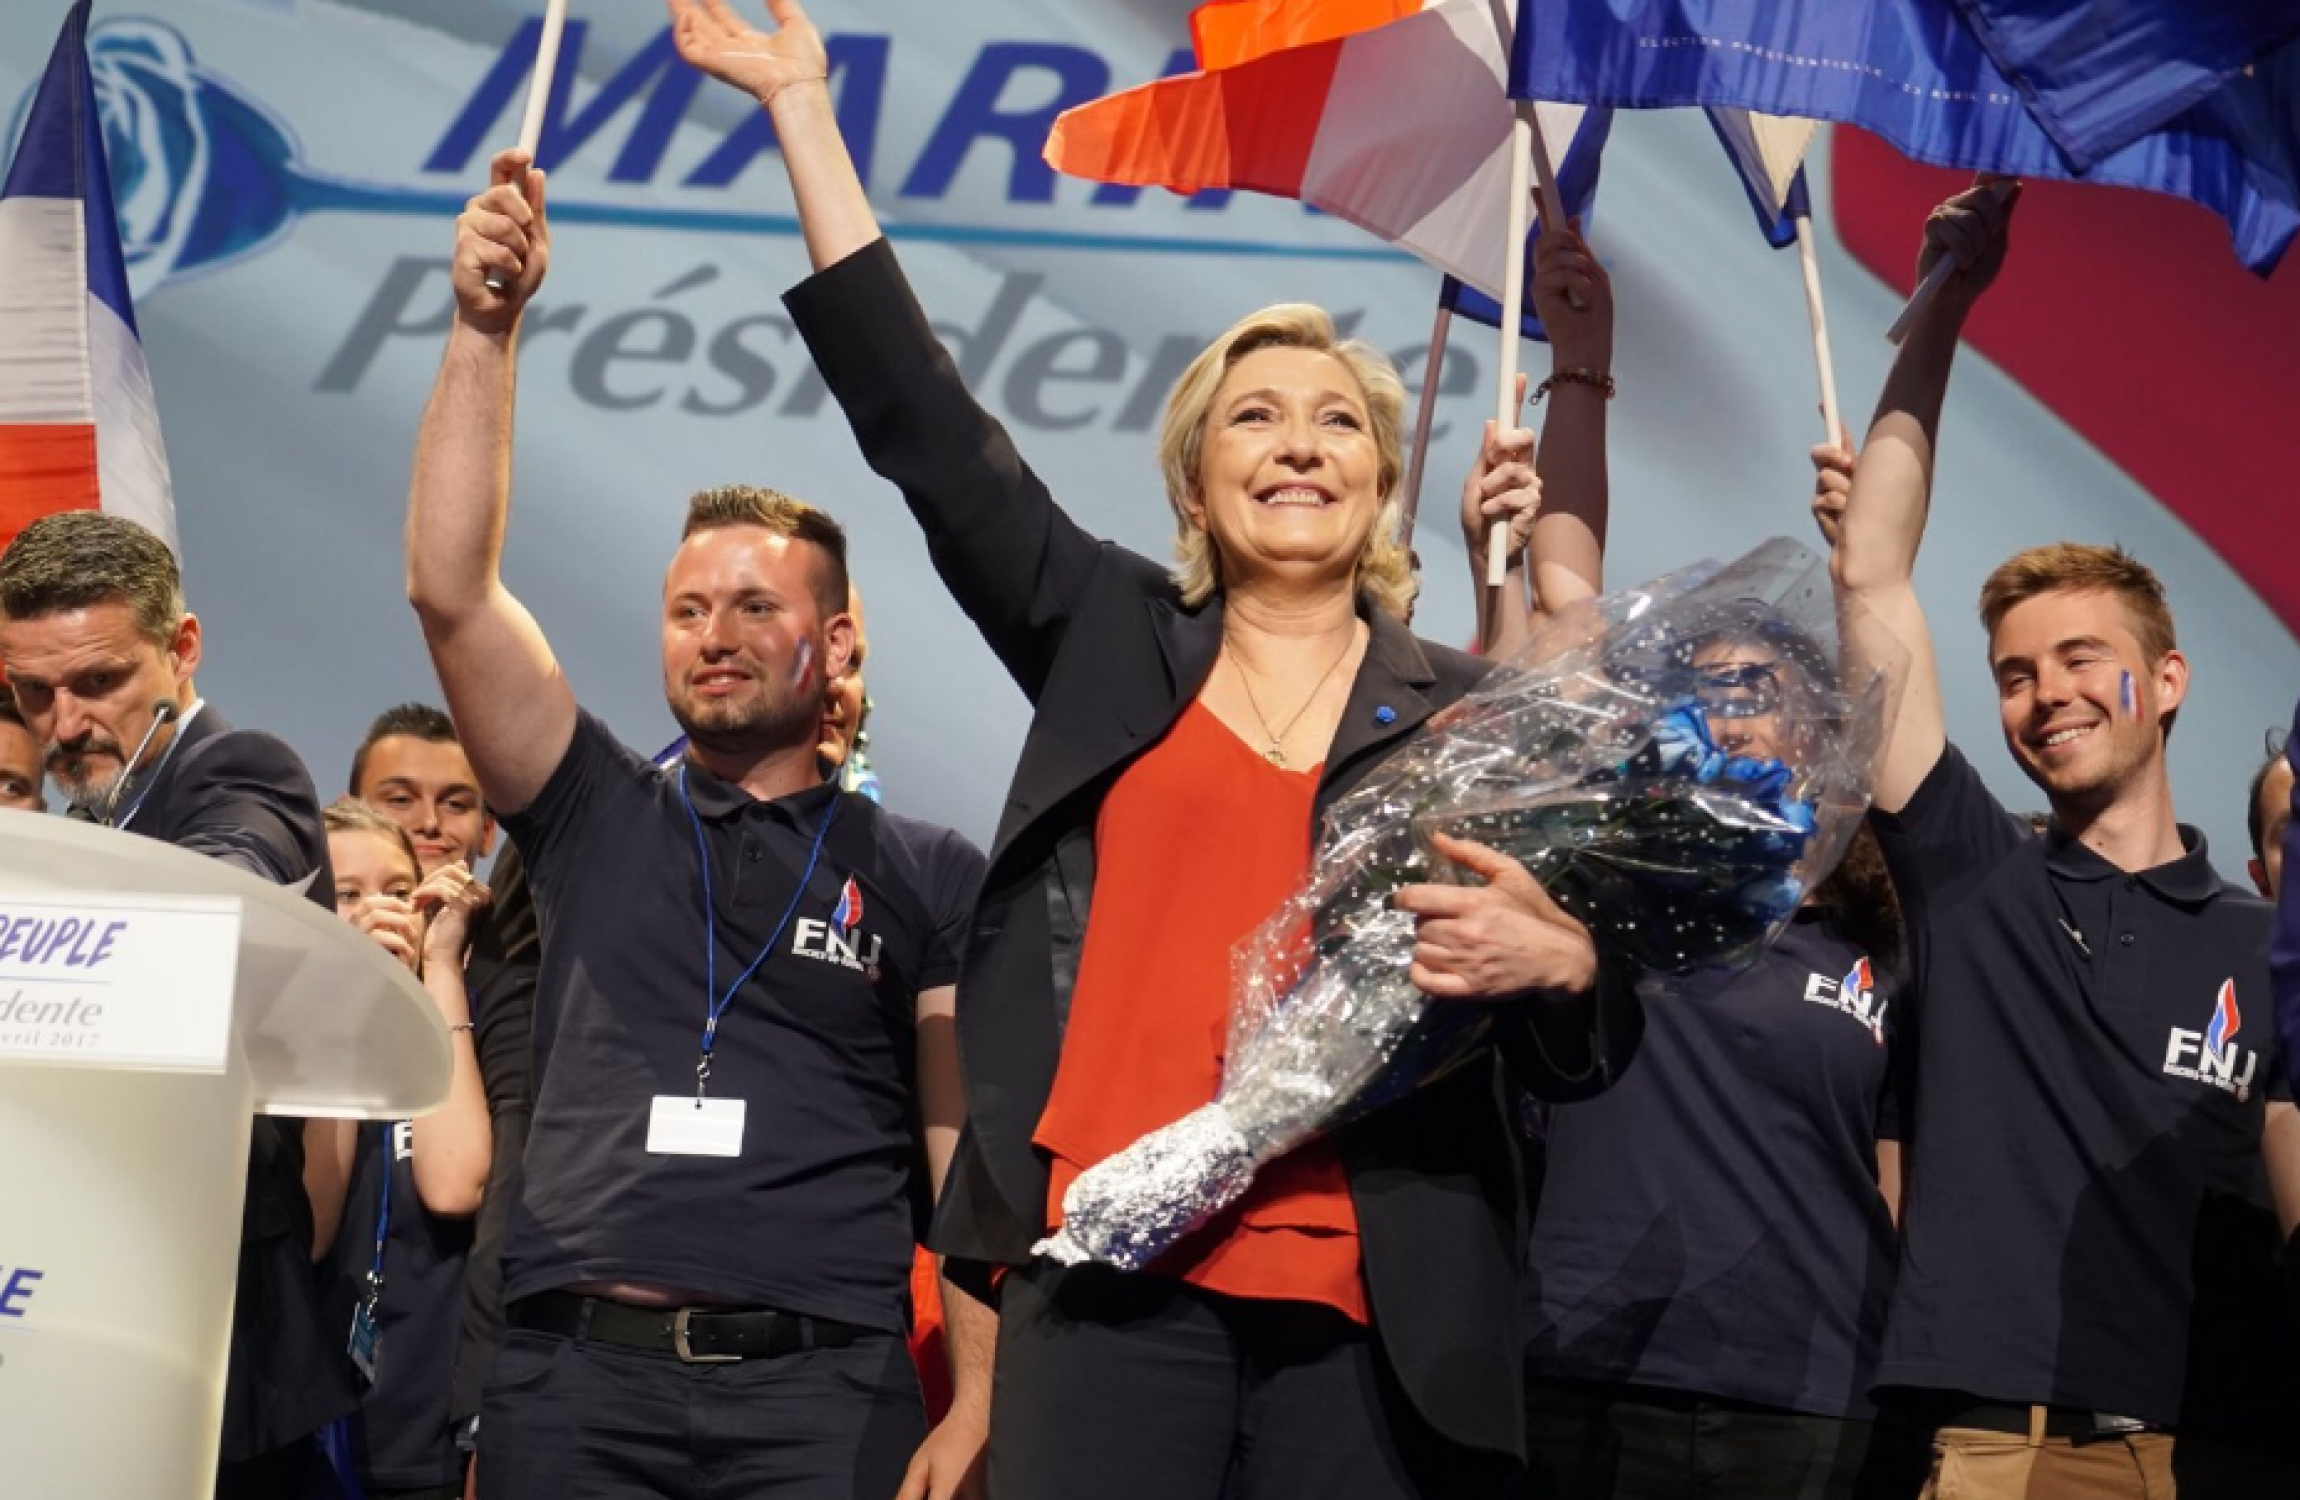 Le Pen savages immigrants in final rallying cry